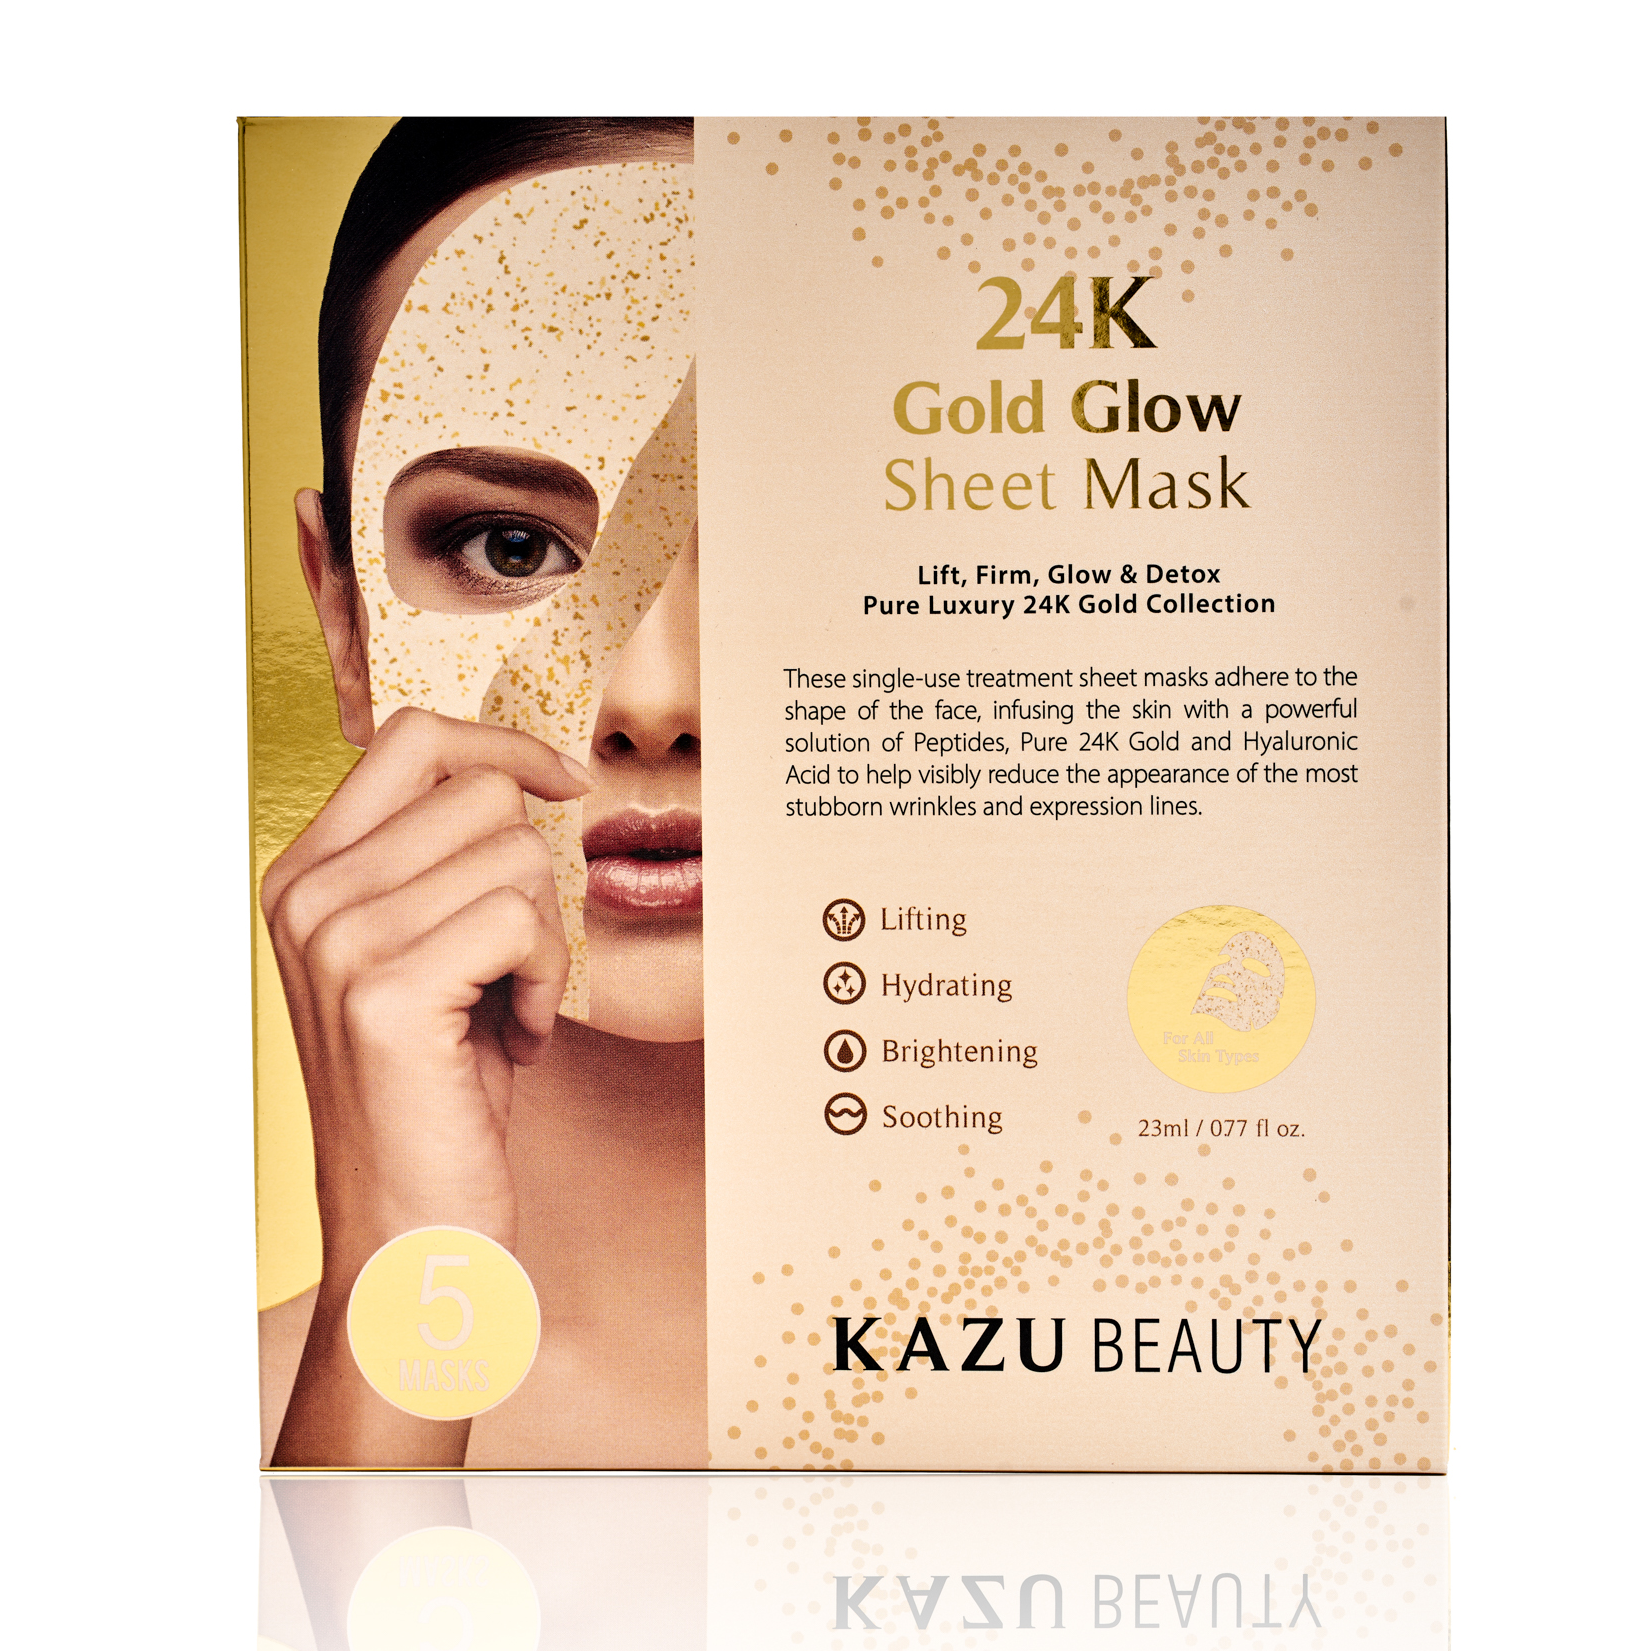 KAZU Beauty's 24k Gold Glow Sheet Mask